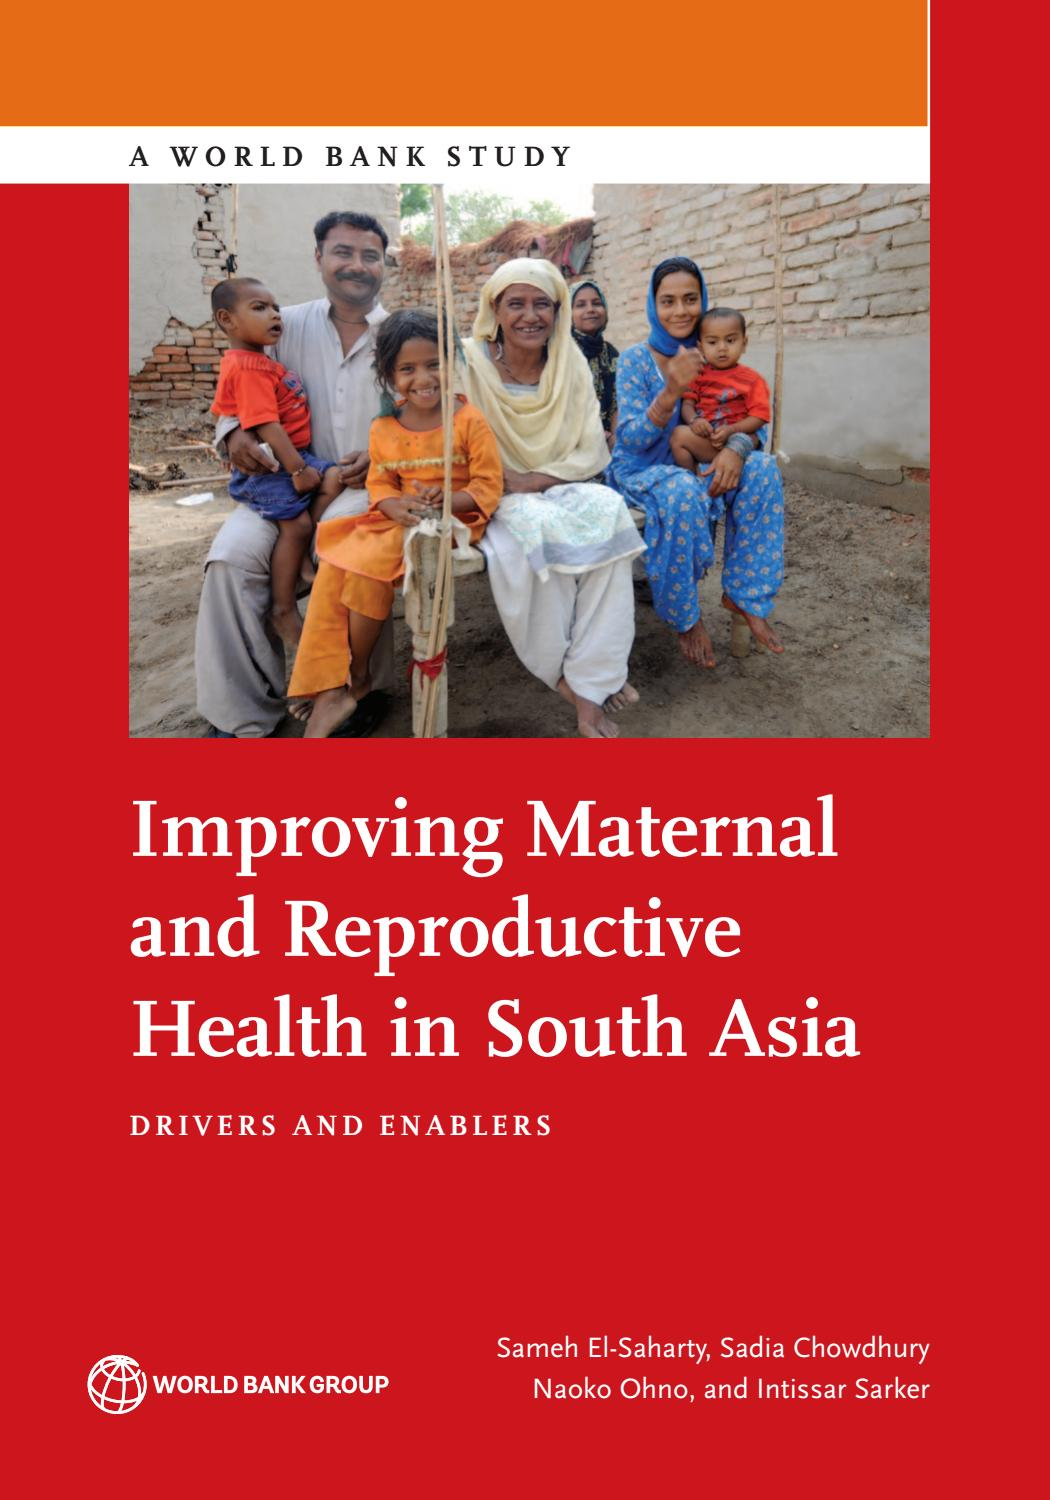 Improving Maternal and Reproductive Health in South Asia by